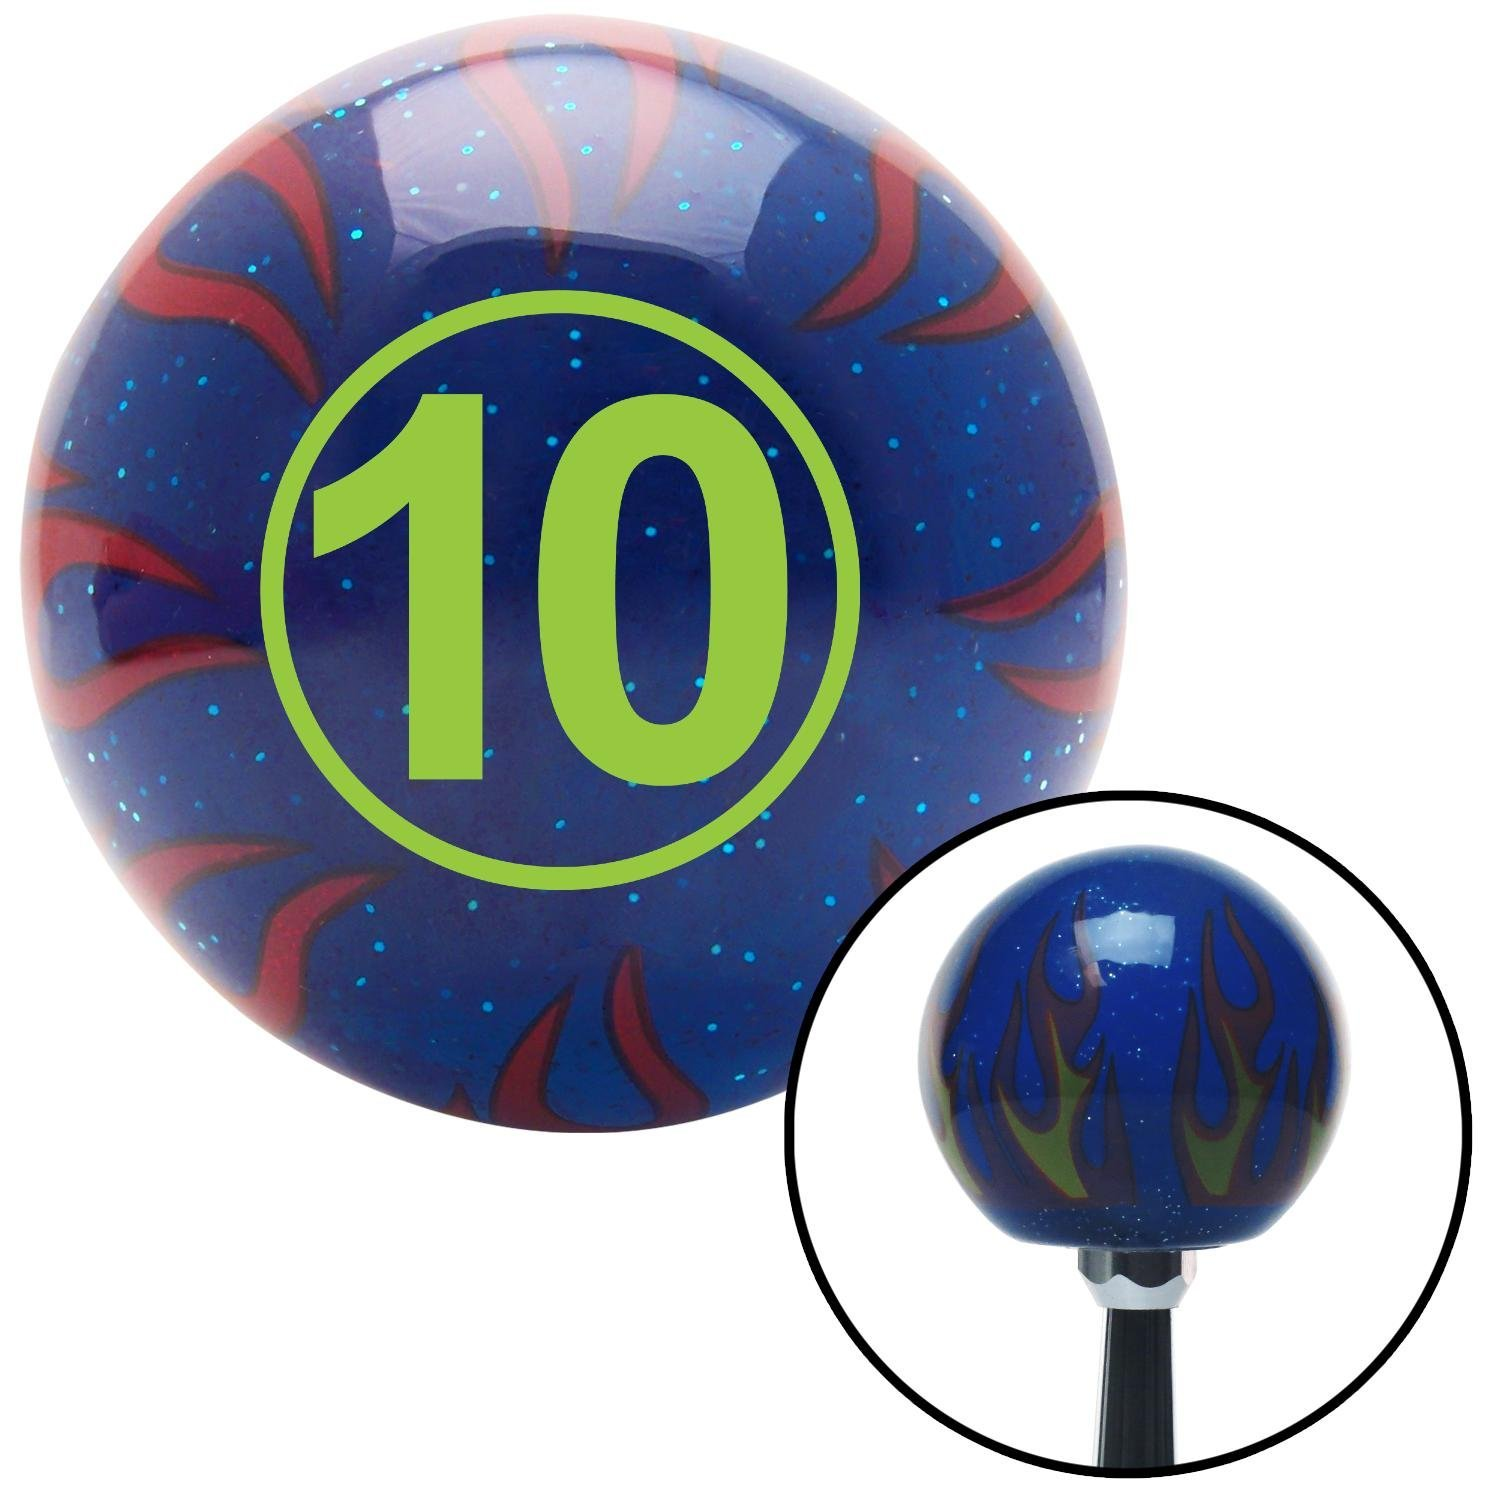 American Shifter 244579 Blue Flame Metal Flake Shift Knob with M16 x 1.5 Insert Green Ball #10